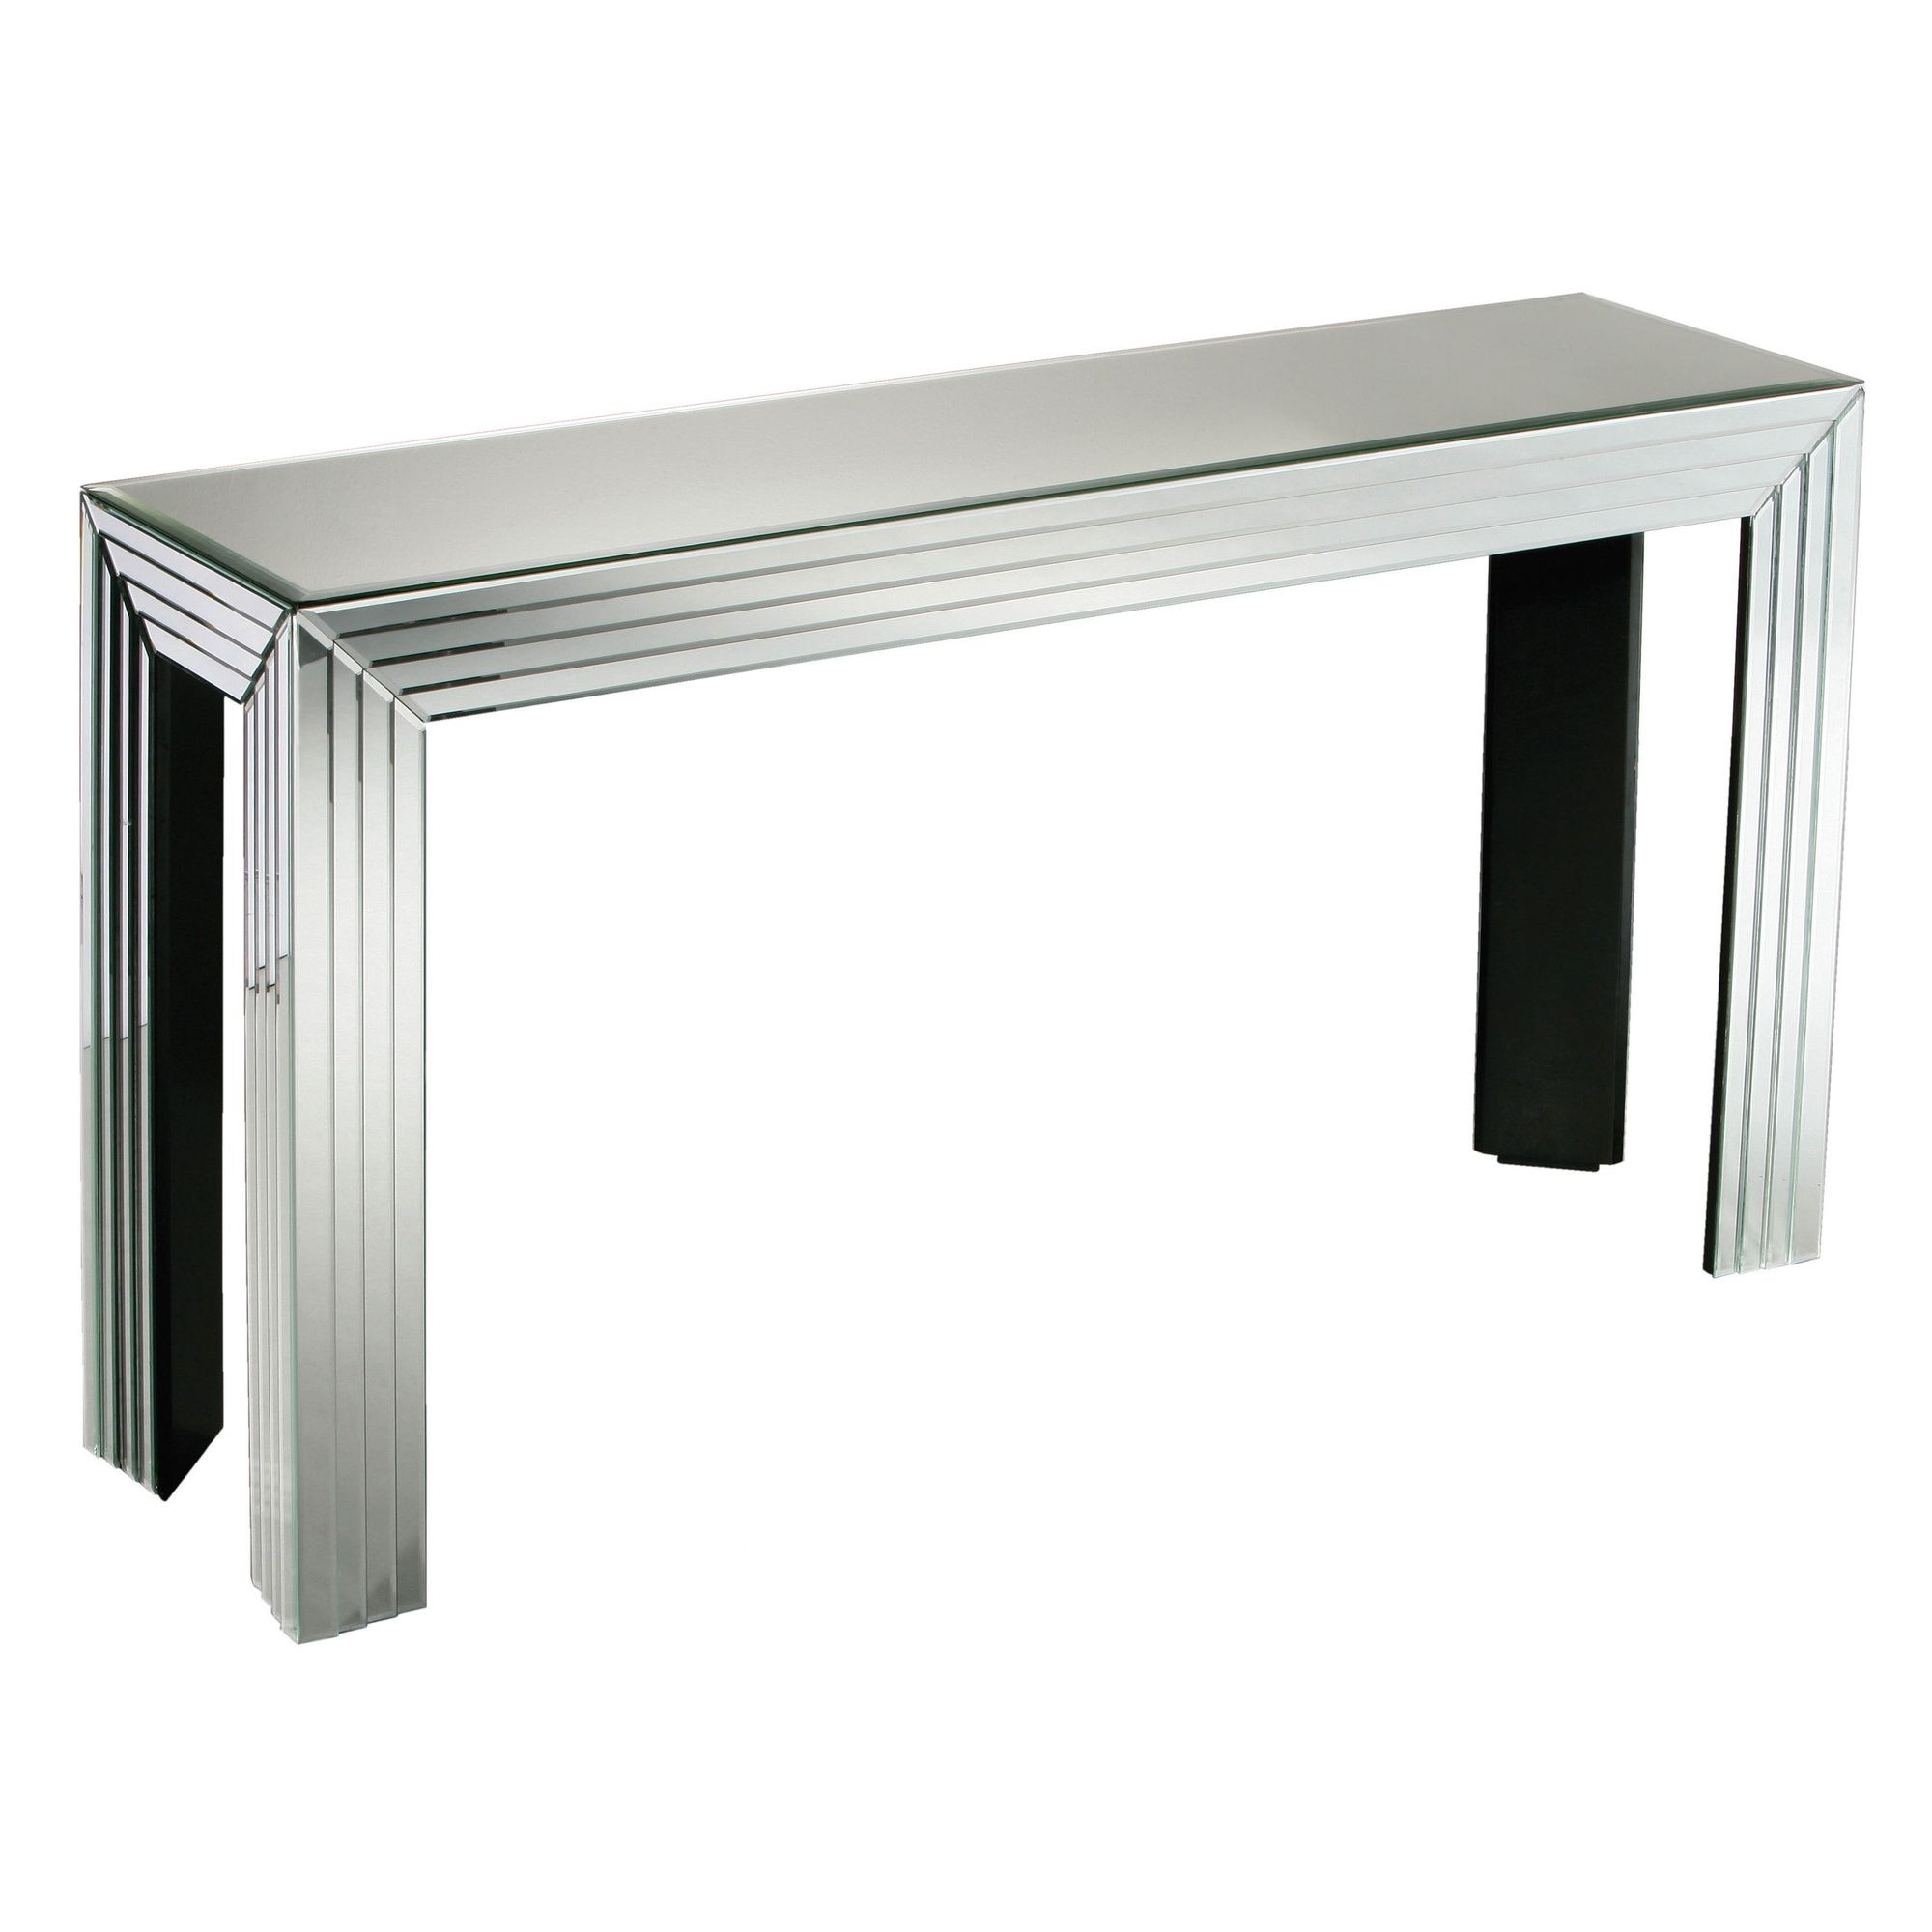 Premier Housewares New Line Console Table at Tesco Direct